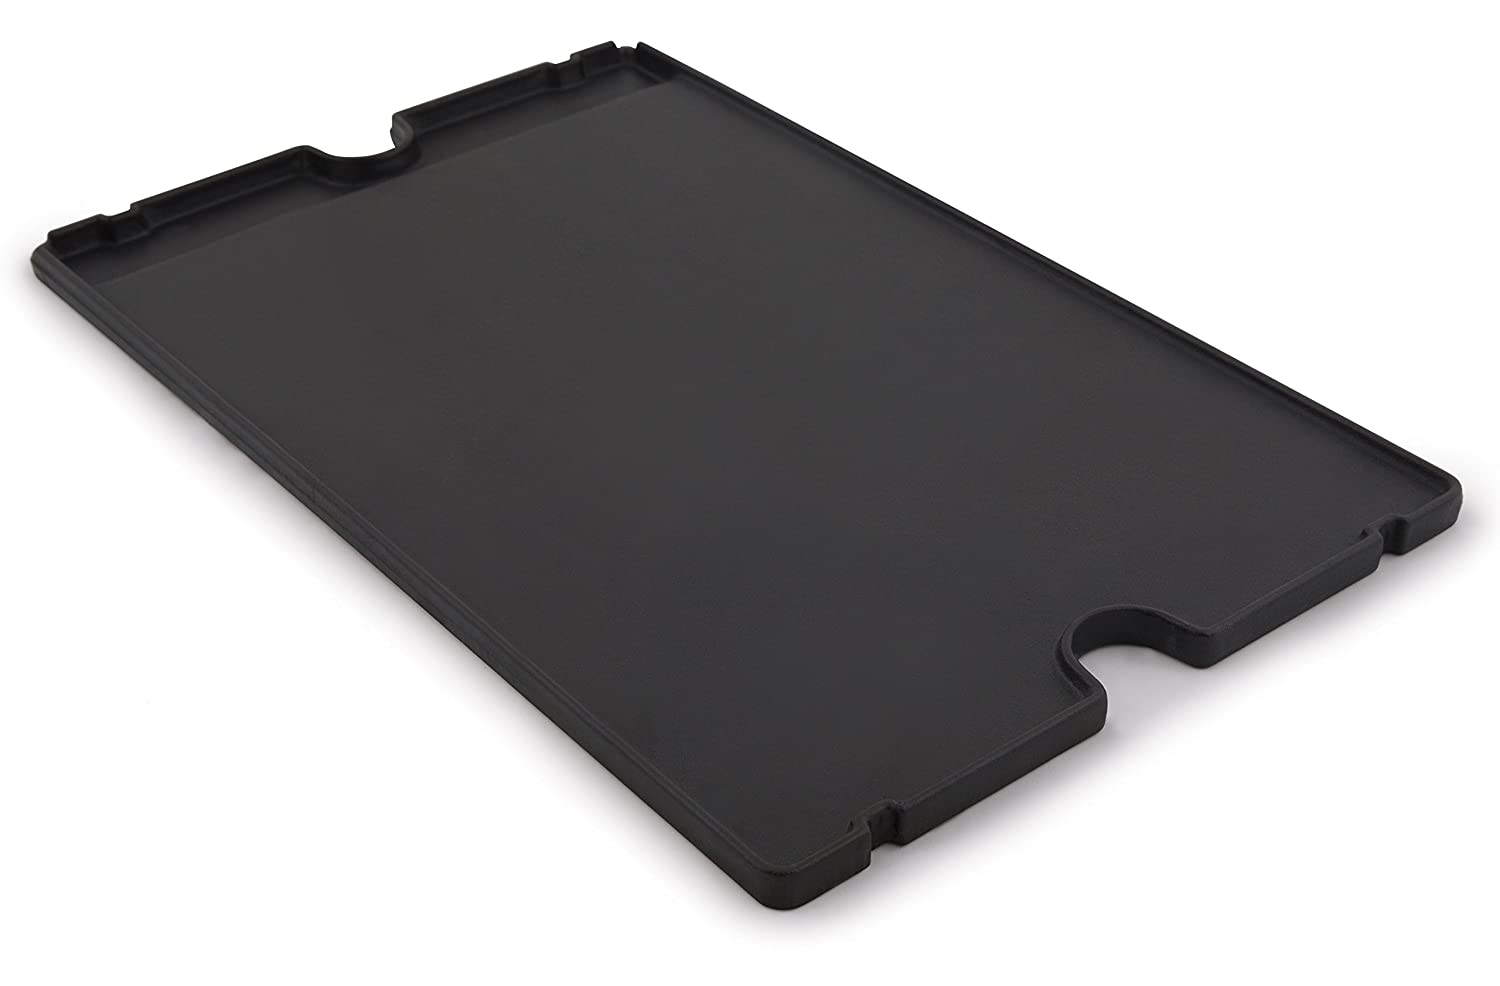 Broil King 11242 Exact Fit Cast Iron Griddle for the Broil King Baron Series Gas Grill